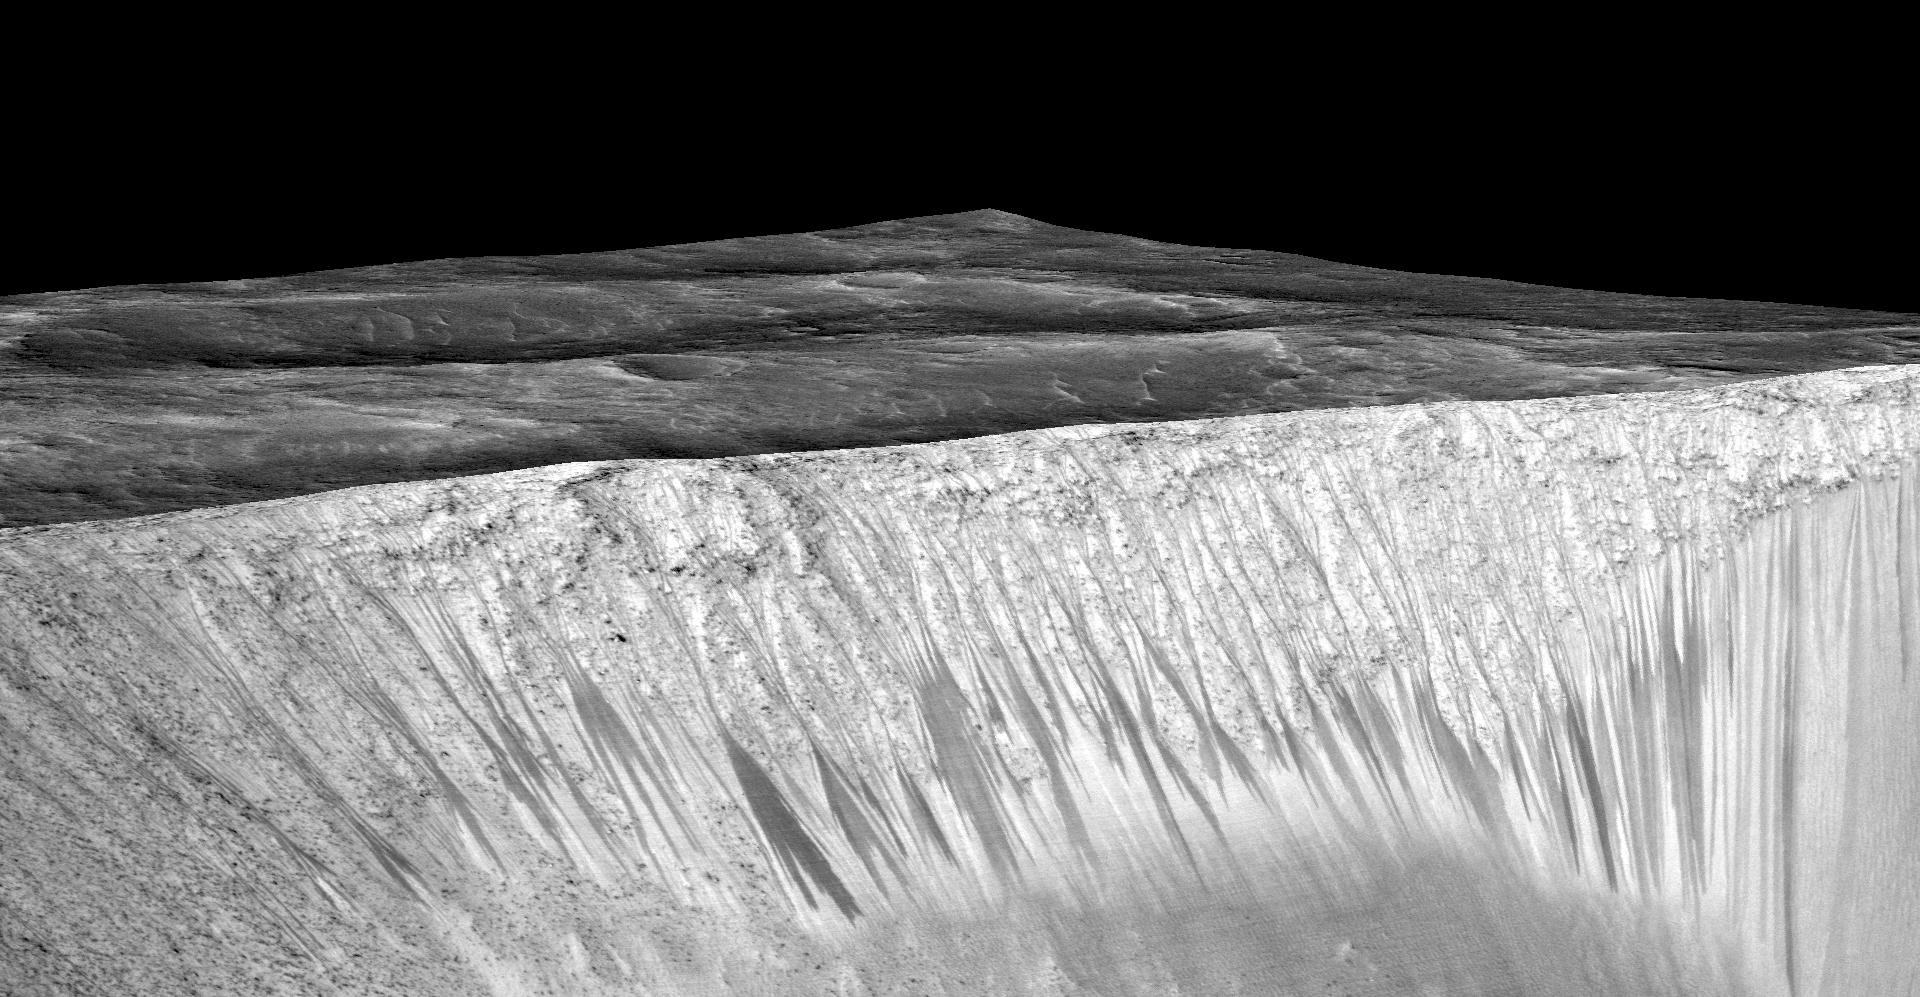 A 3-D computer model (a digital terrain map) of the walls of Garni Crater on Mars based on stereo information from two HiRISE observations showing dark, narrow streaks on the Martian slopes that are inferred to be formed by seasonal flow of water on contemporary Mars.